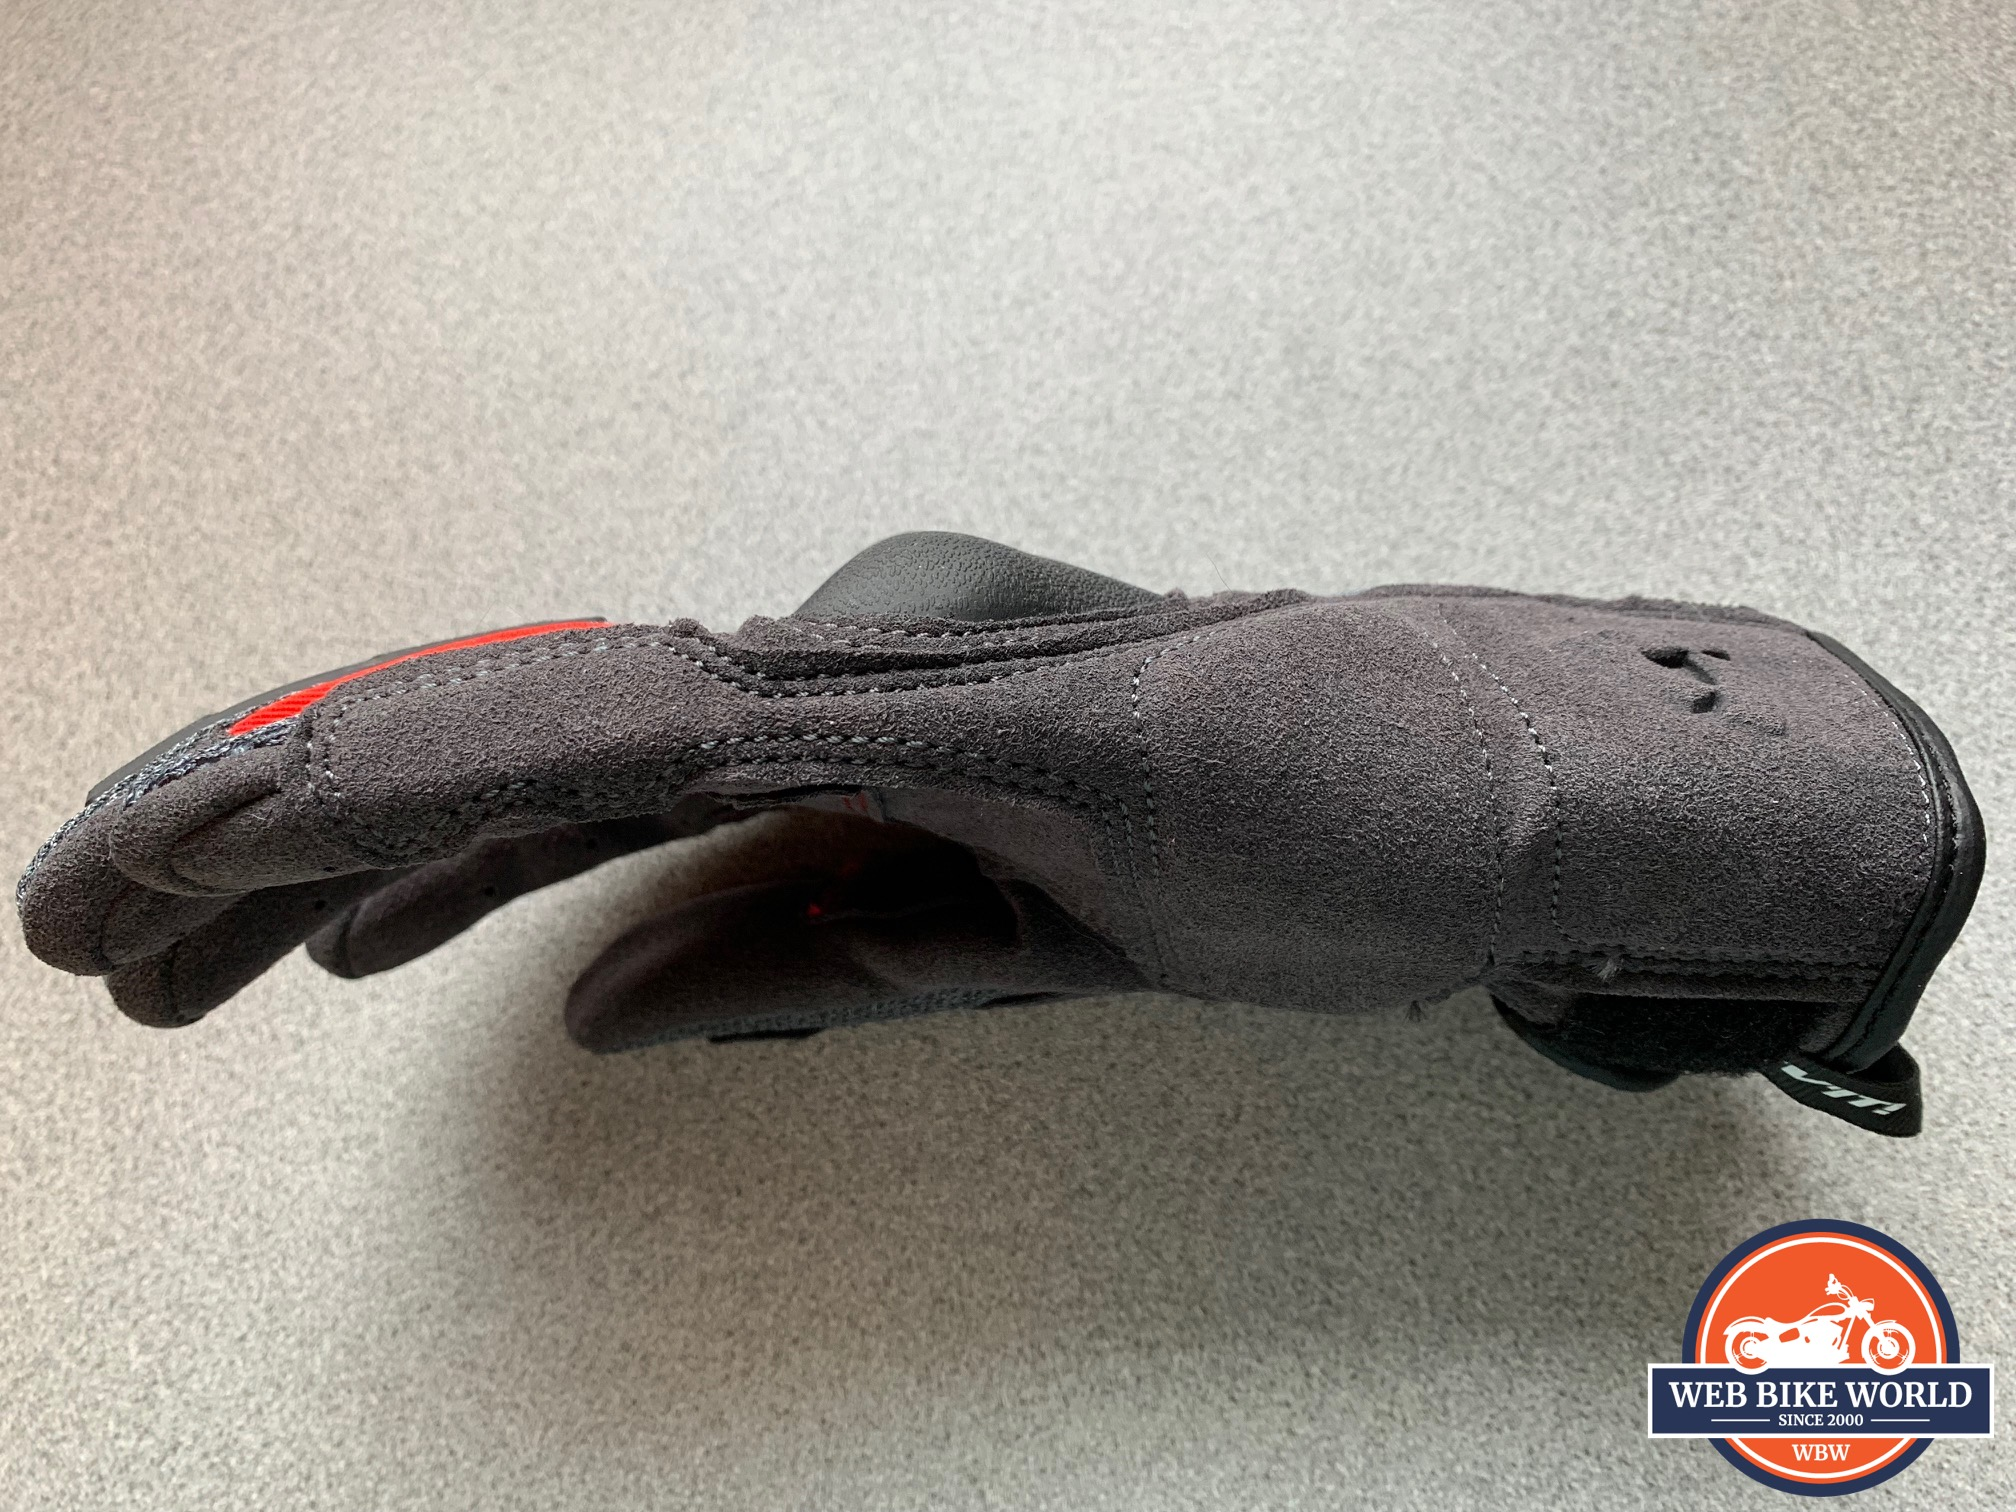 A view of the double stitching on the REV'IT! Volcano gloves